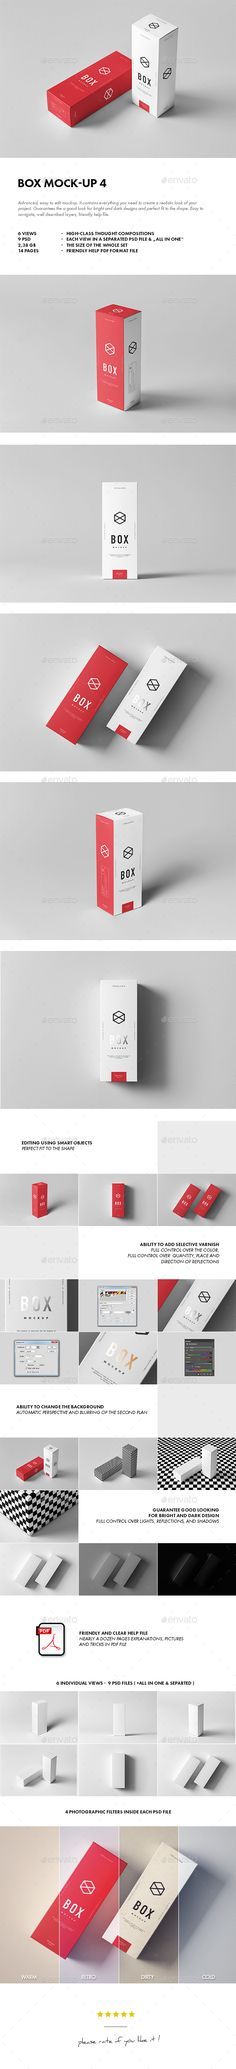 Box Mock-up Design Template 4 - Miscellaneous Packaging Mock Up Design Template PSD. Download here: https://graphicriver.net/item/box-mockup-4/19179366?ref=yinkira